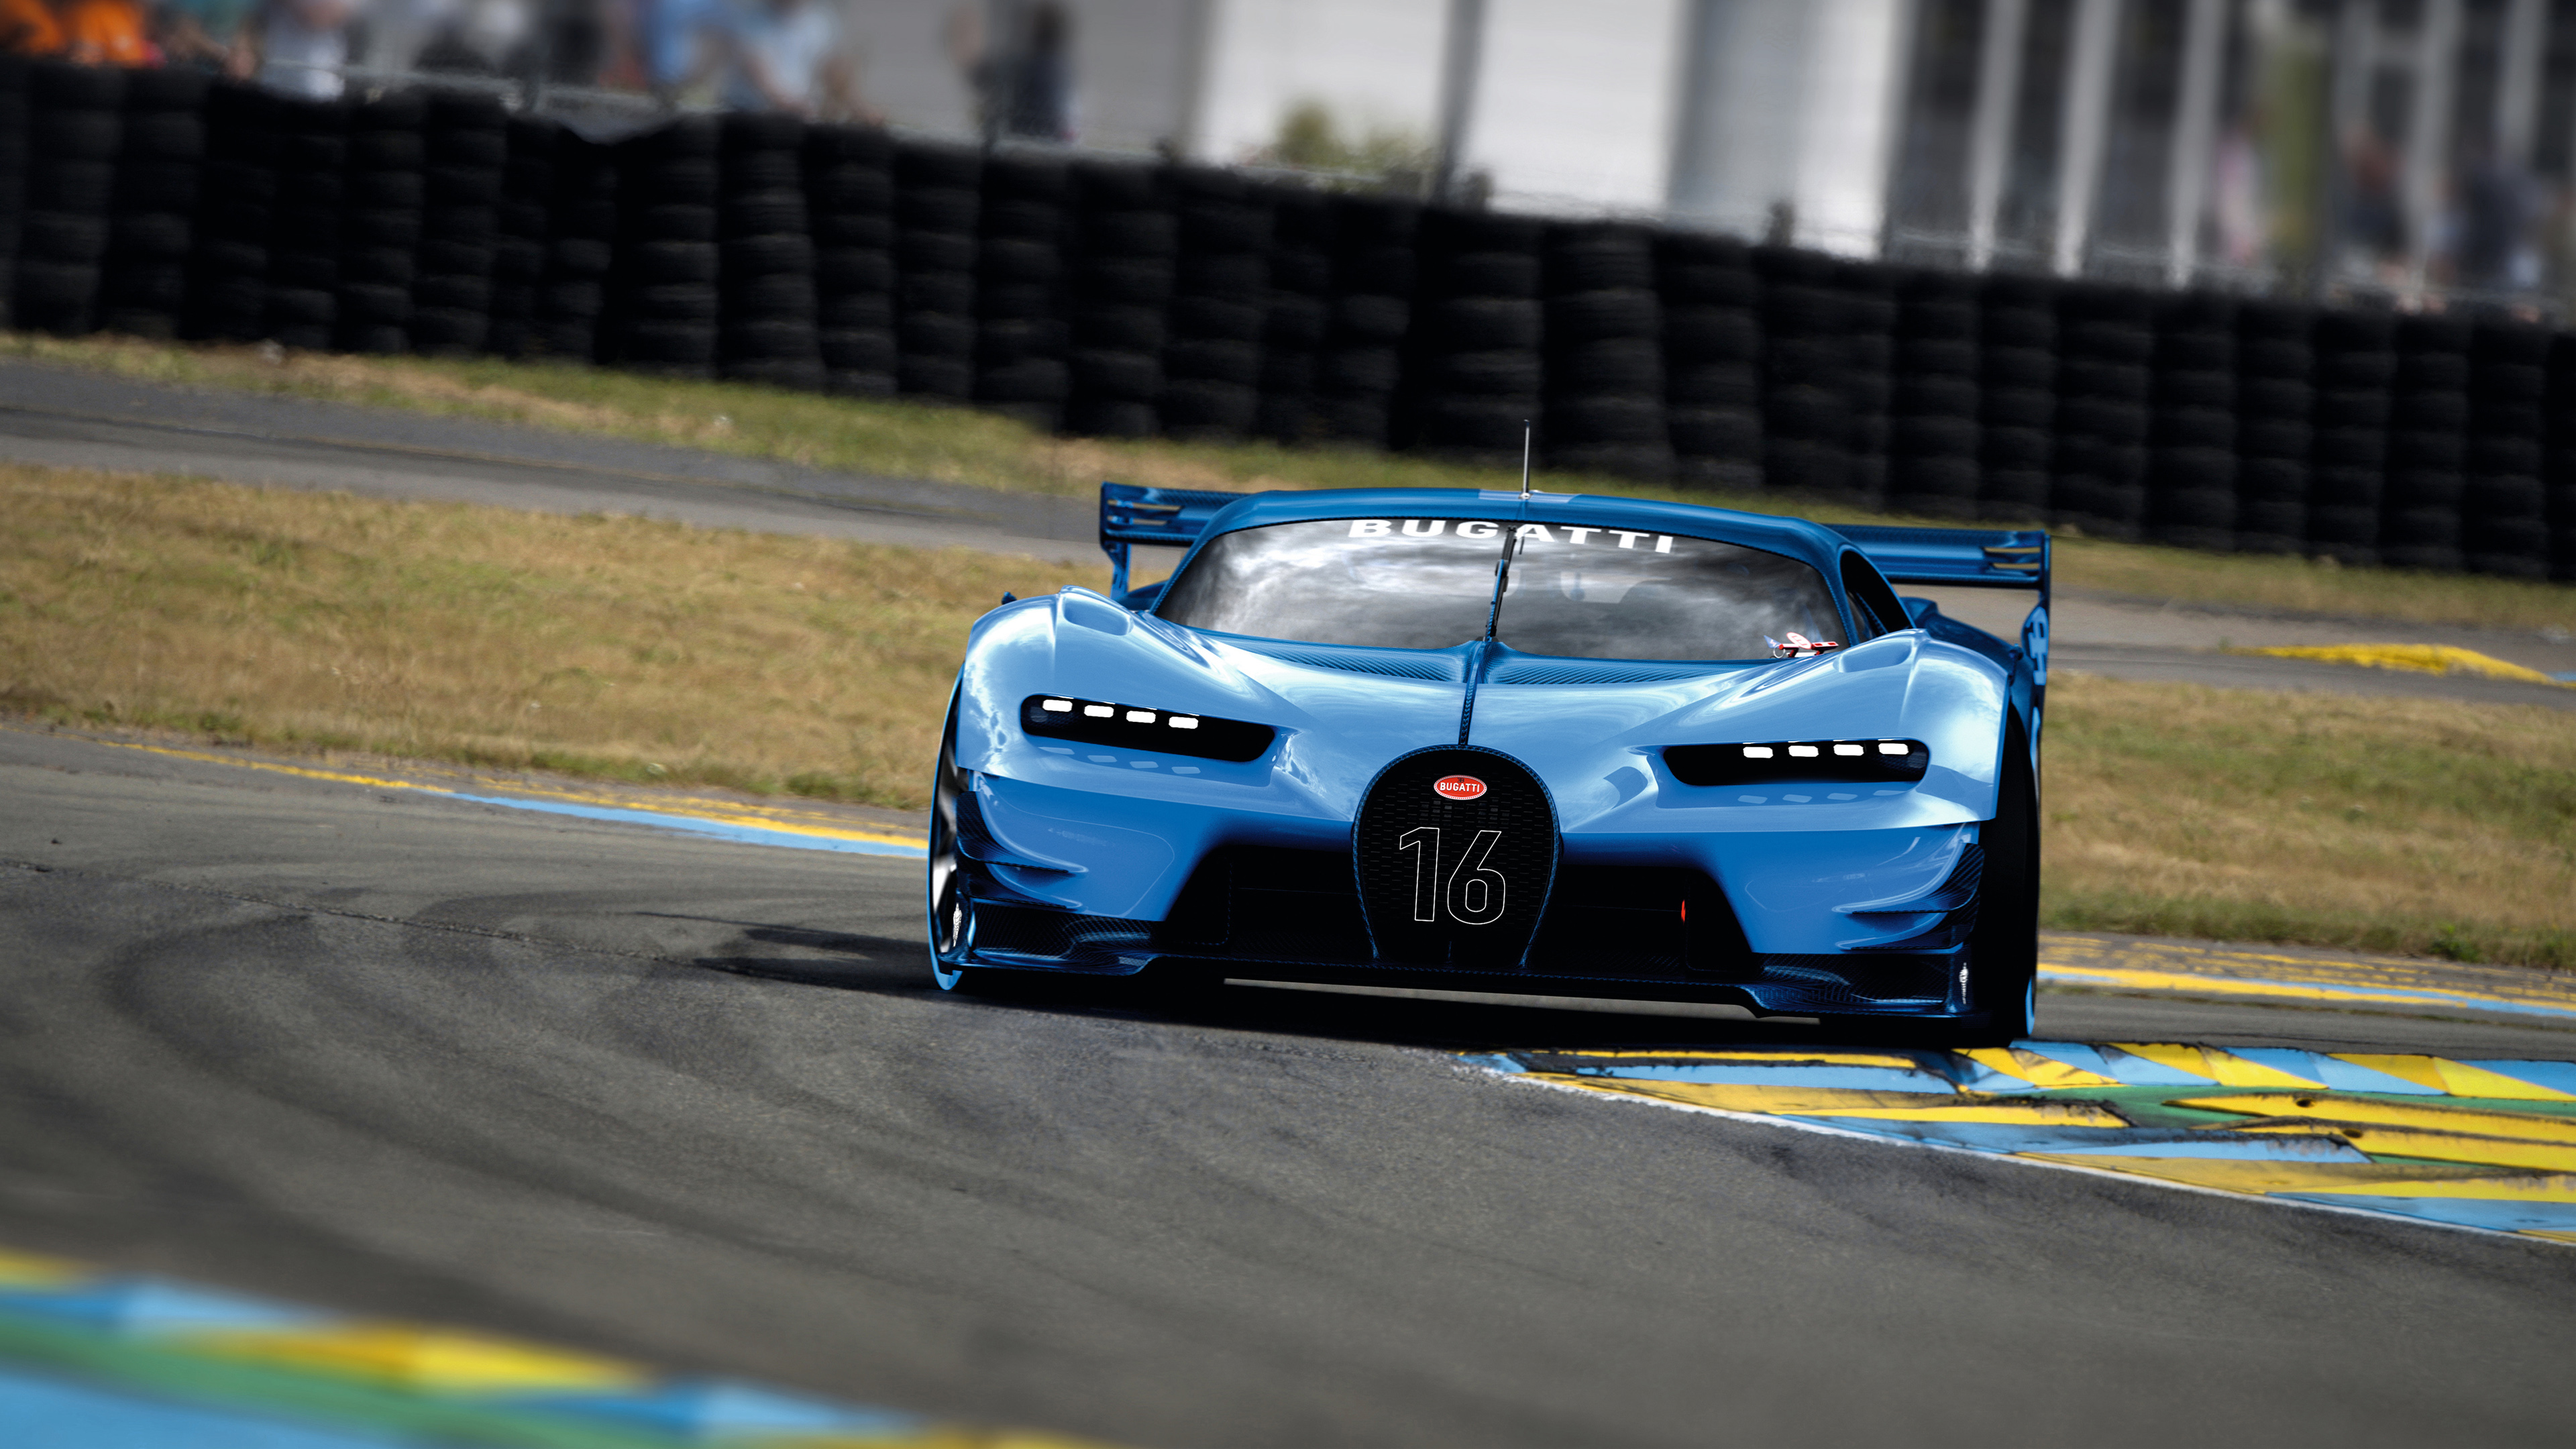 2015 Bugatti Vision Gran Turismo 9 Wallpaper | HD Car ...